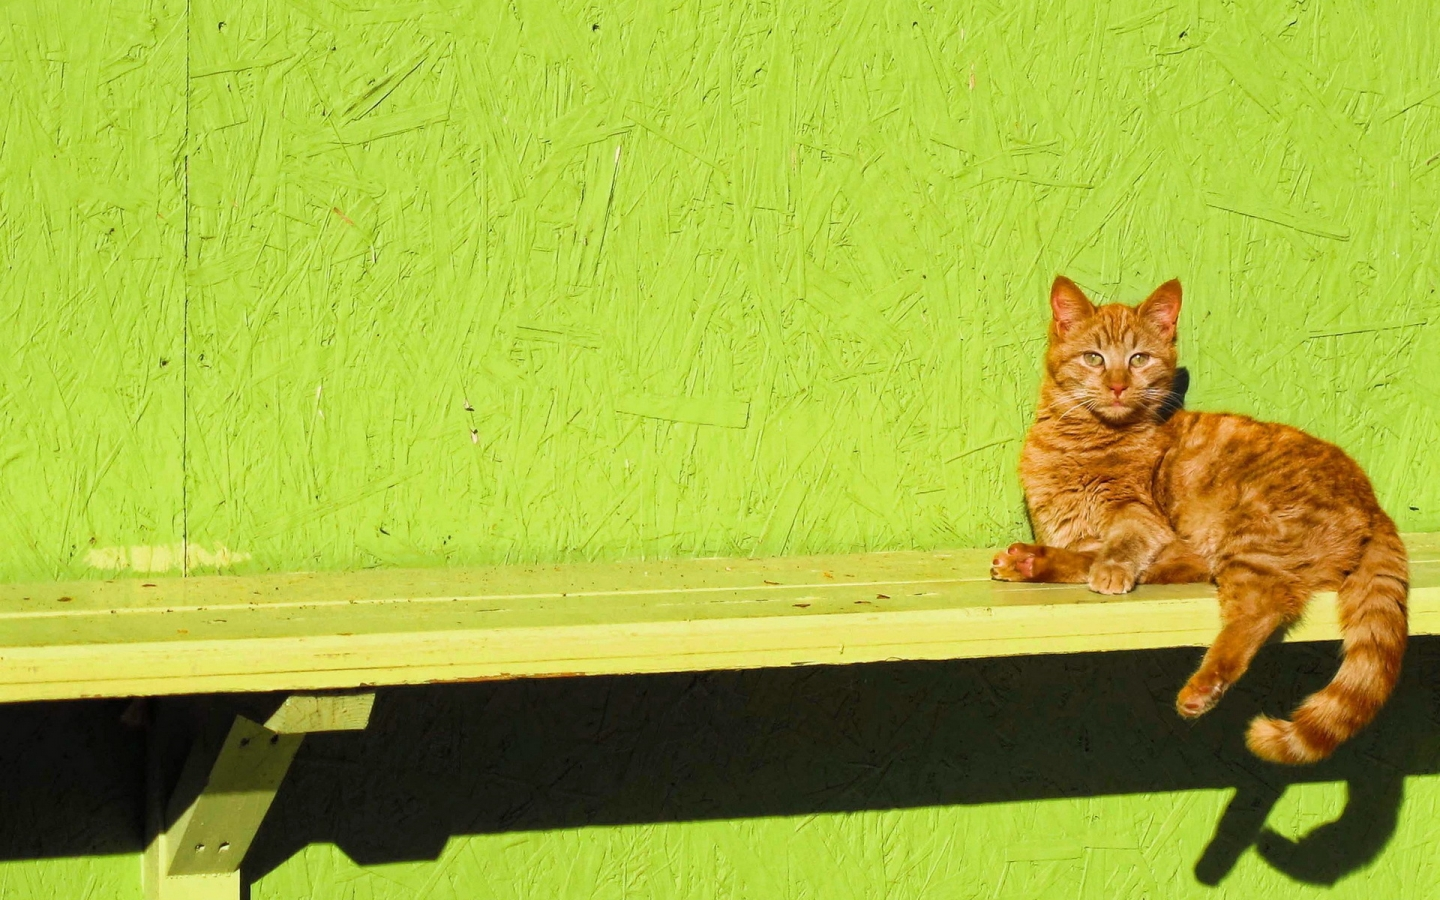 Ginger Cat Sitting on a Bench for 1440 x 900 widescreen resolution